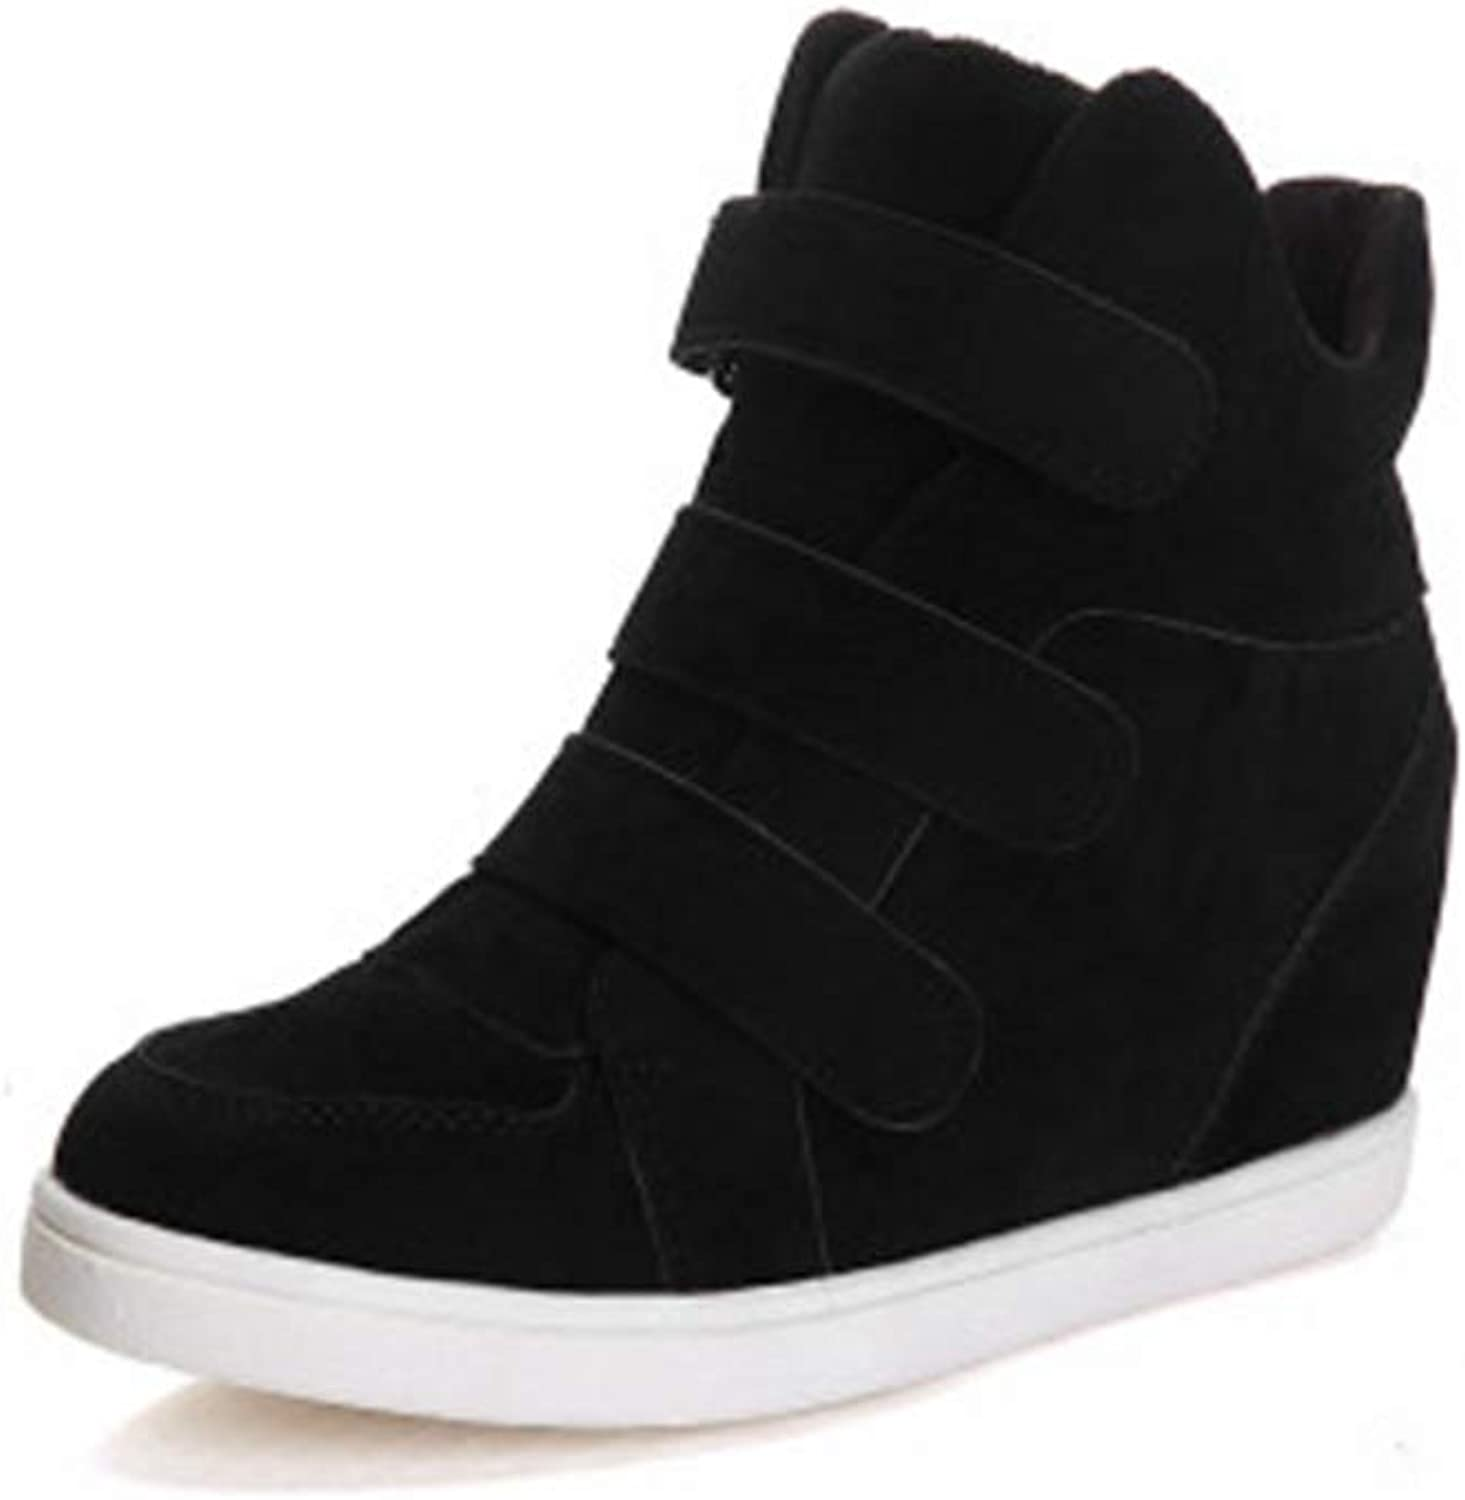 Woman Wedge Mid Heel Ankle Boots Round Toe Hook & Loop Plush Warm Winter Fashion Casual Outdoor Sneaker